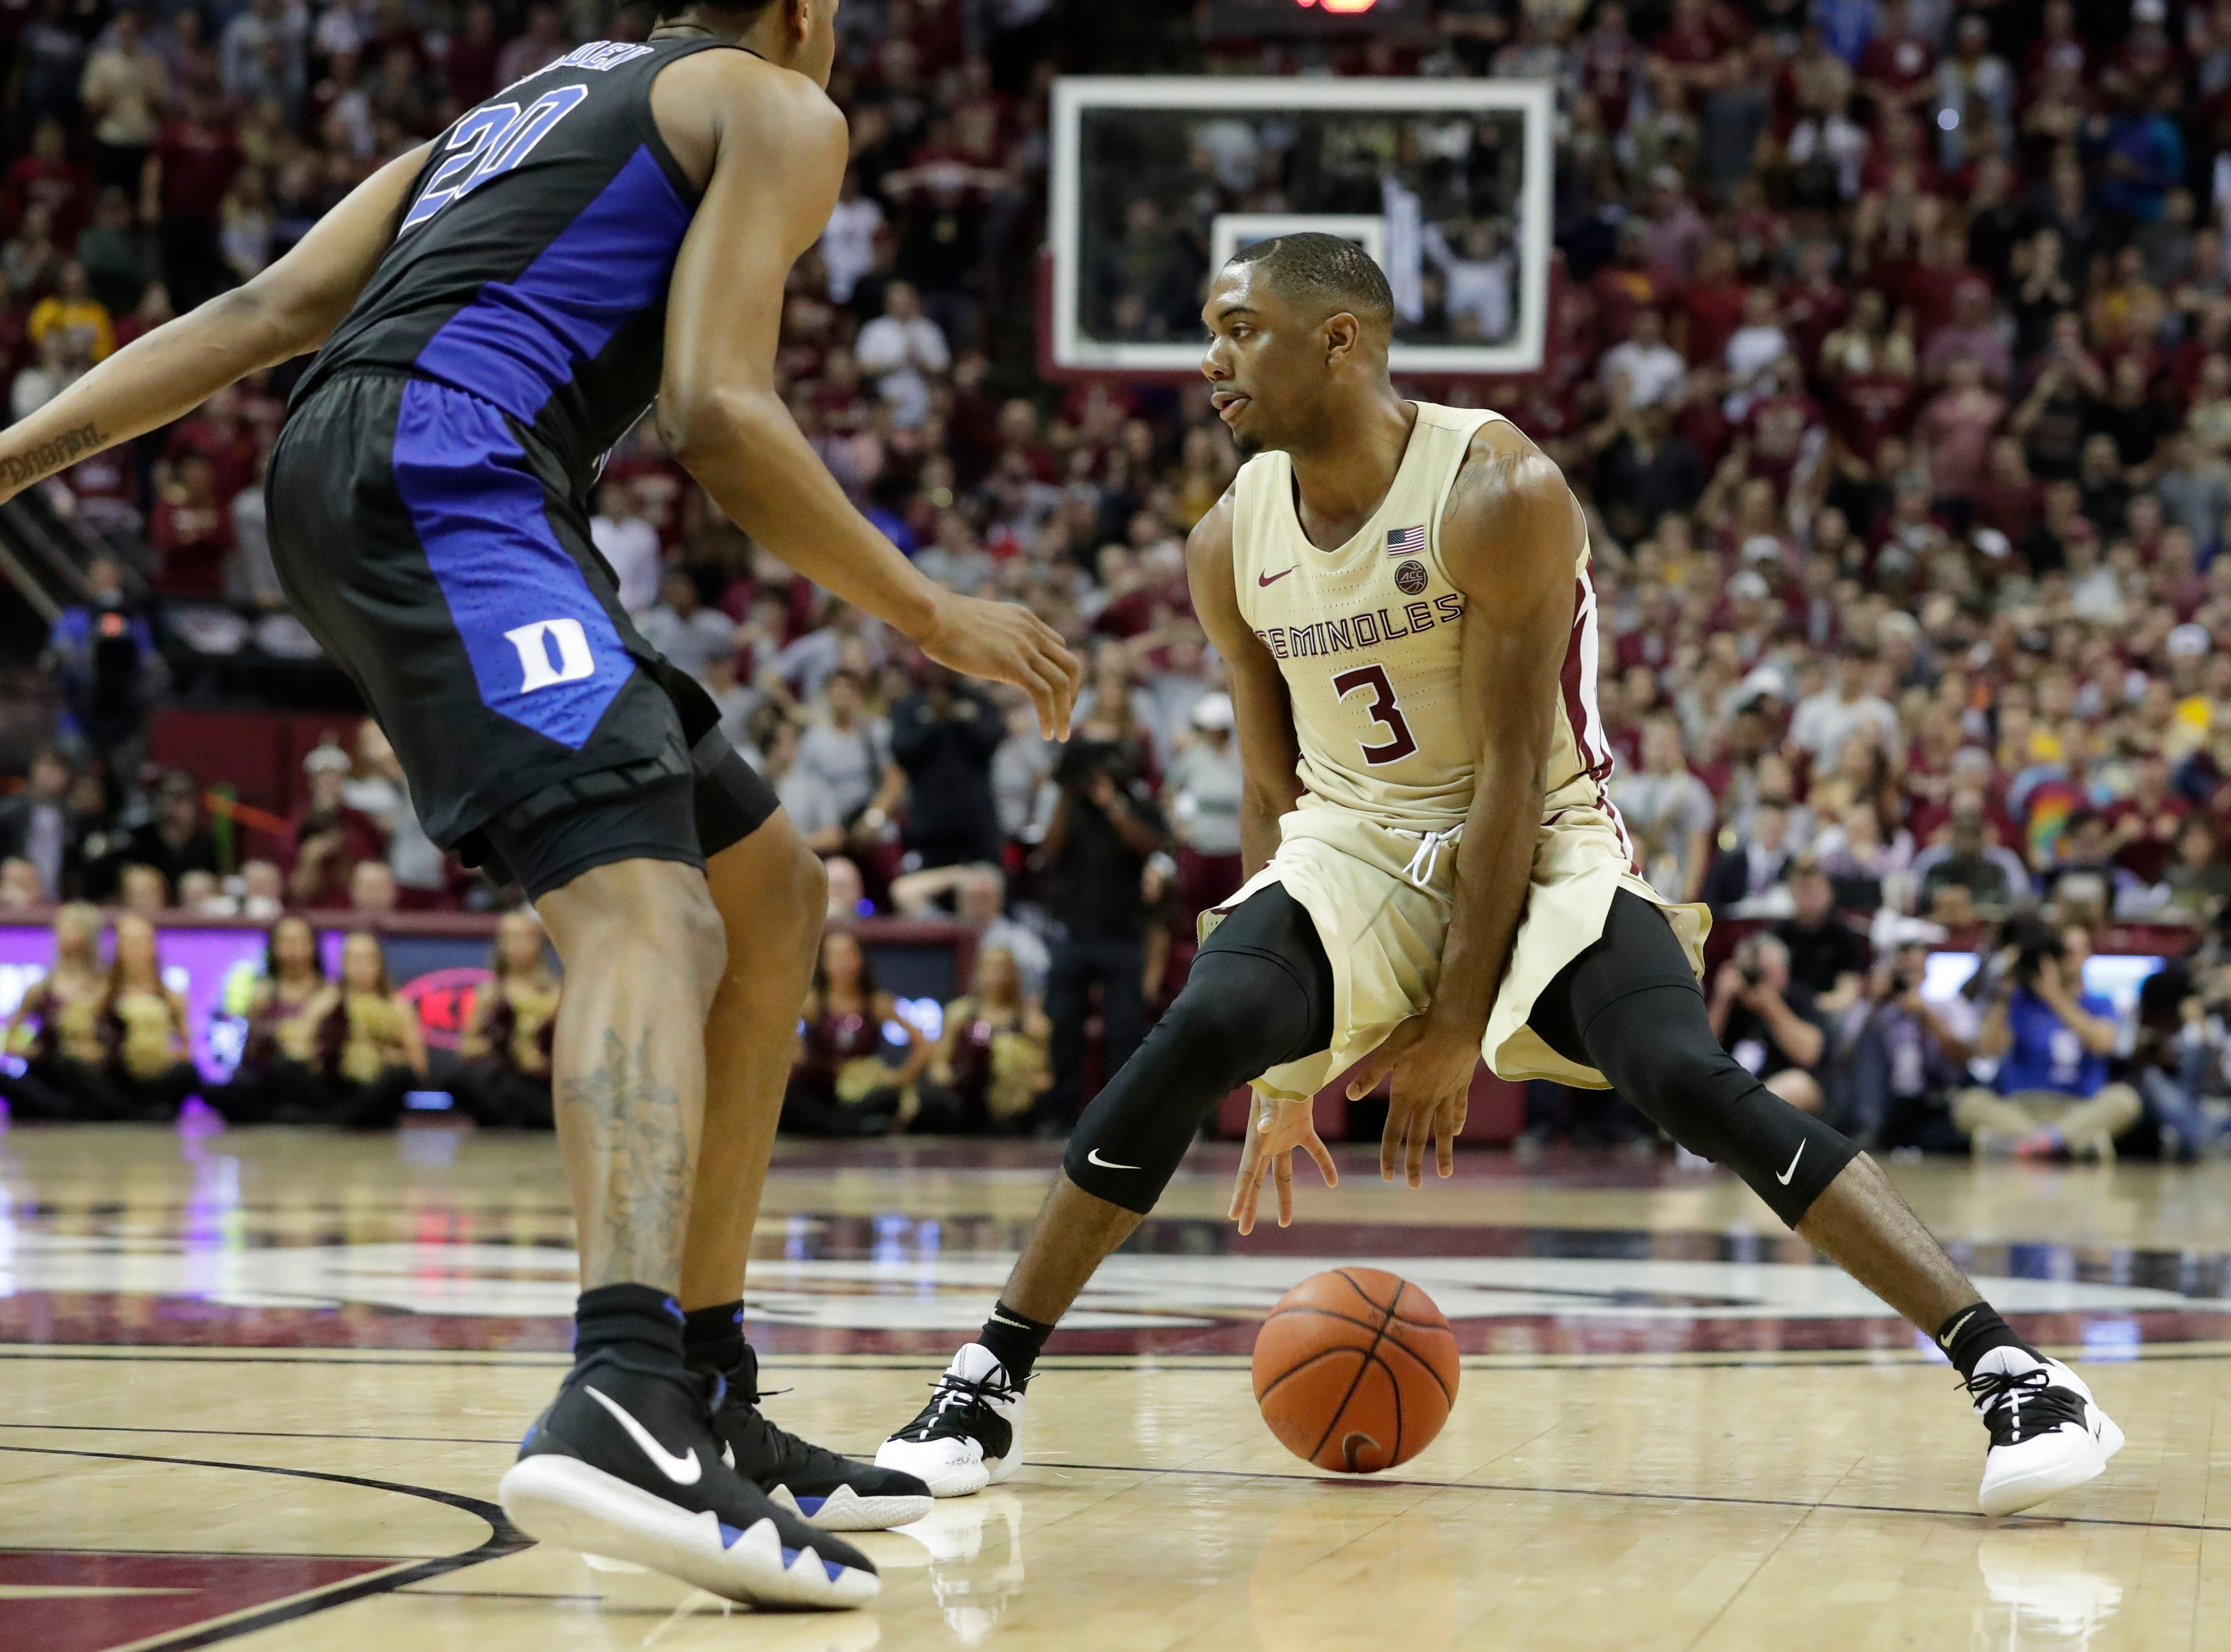 Florida State Seminoles guard Trent Forrest (3) dribbles the ball between his legs. Ranked 13 in the ACC, the Florida State Seminoles host the number 1 team, the Duke Blue Devils, at the Tucker Civic Center, Saturday, Jan. 12, 2019.